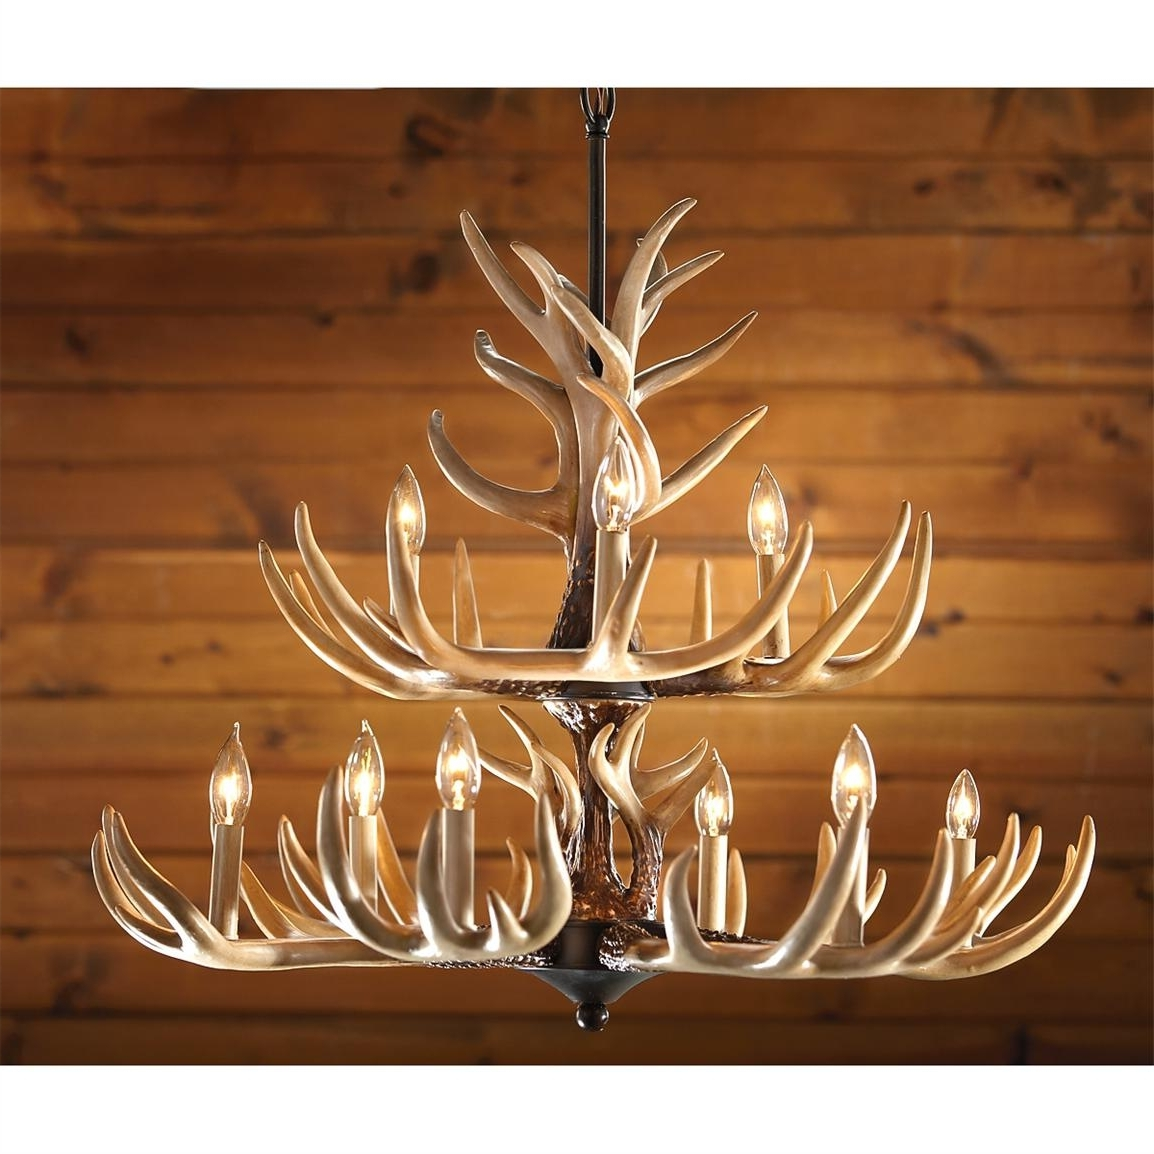 Castlecreek 9 Light Whitetail Antler Chandelier – 226093, Lighting Intended For Widely Used Antler Chandeliers (View 4 of 15)